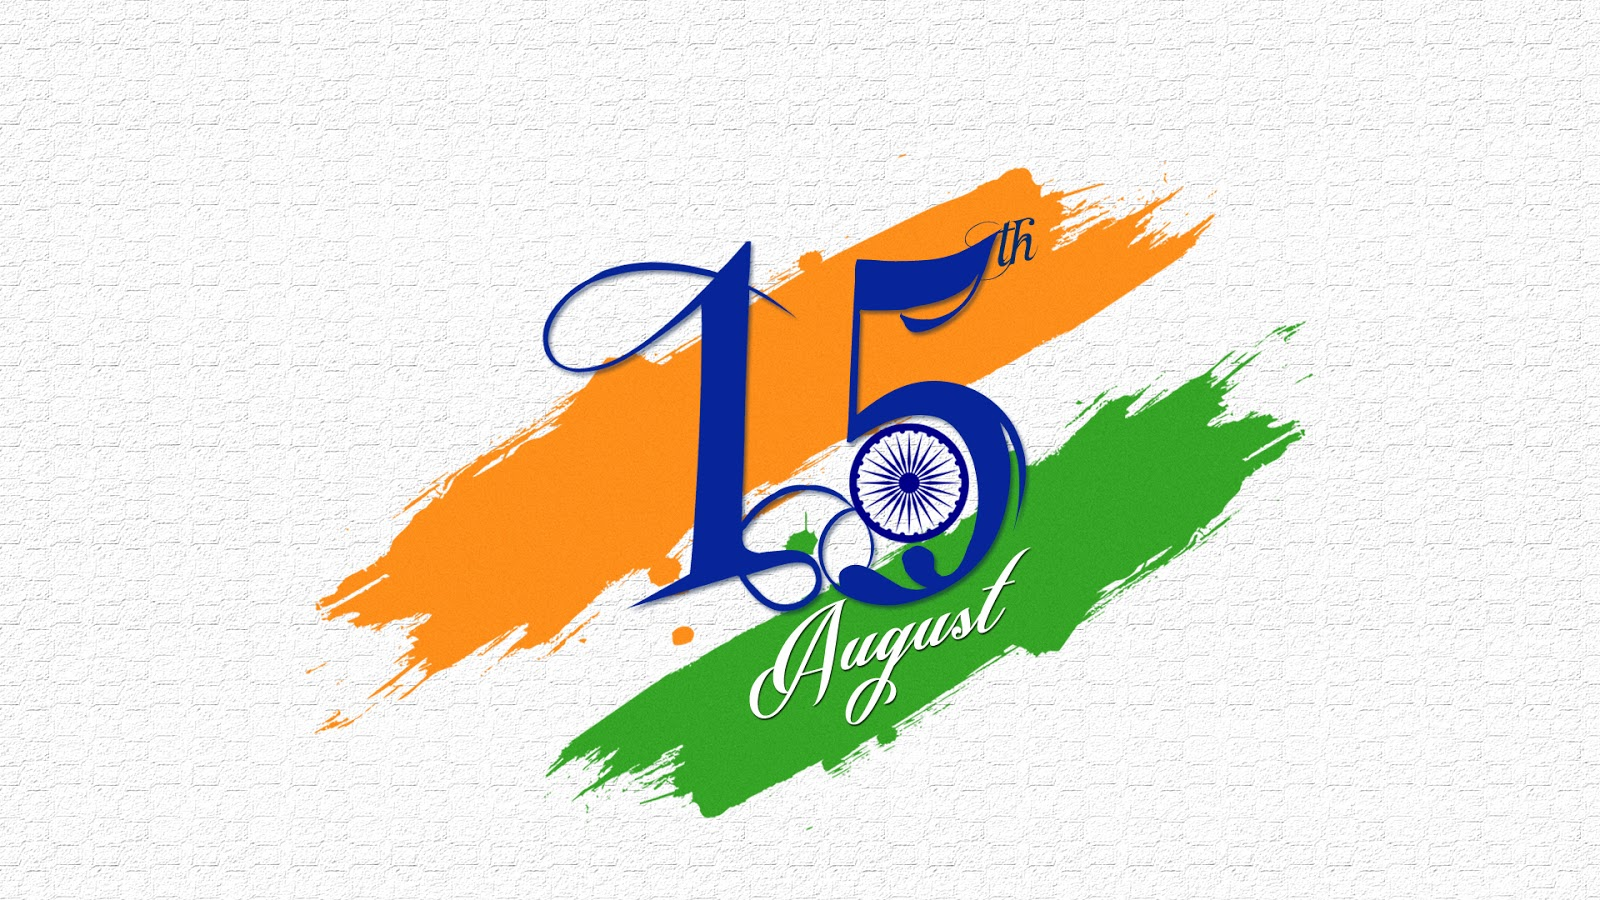 15 August Independence Day Hd Wallpaper: Happy 15th August Independence Day HD Wallpapers 1080p